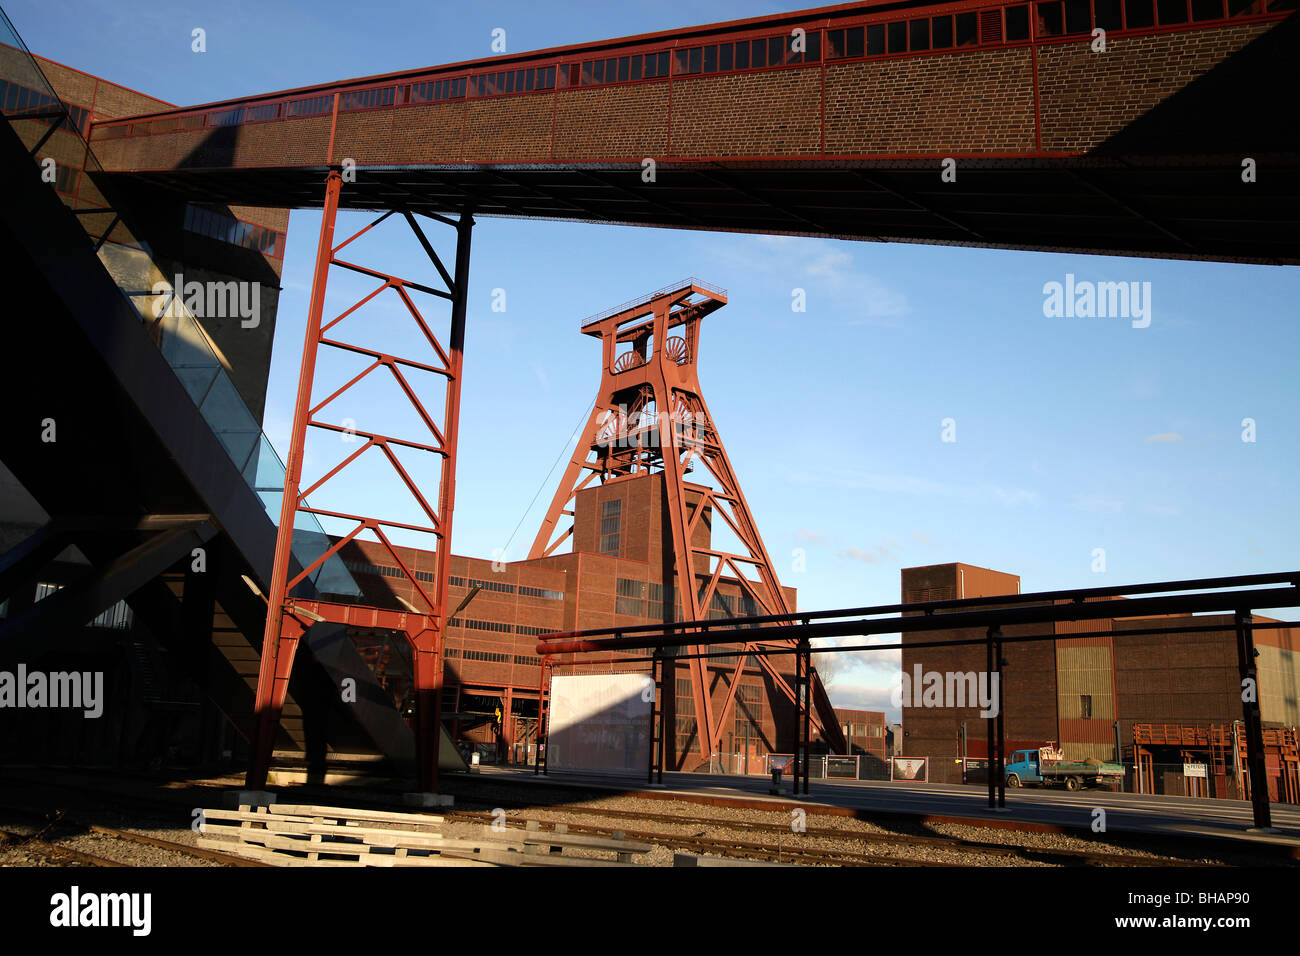 The winding tower of shaft 12 at the Zollverein Coal Mine Complex Essen, North Rhine-Westphalia, Germany - Stock Image